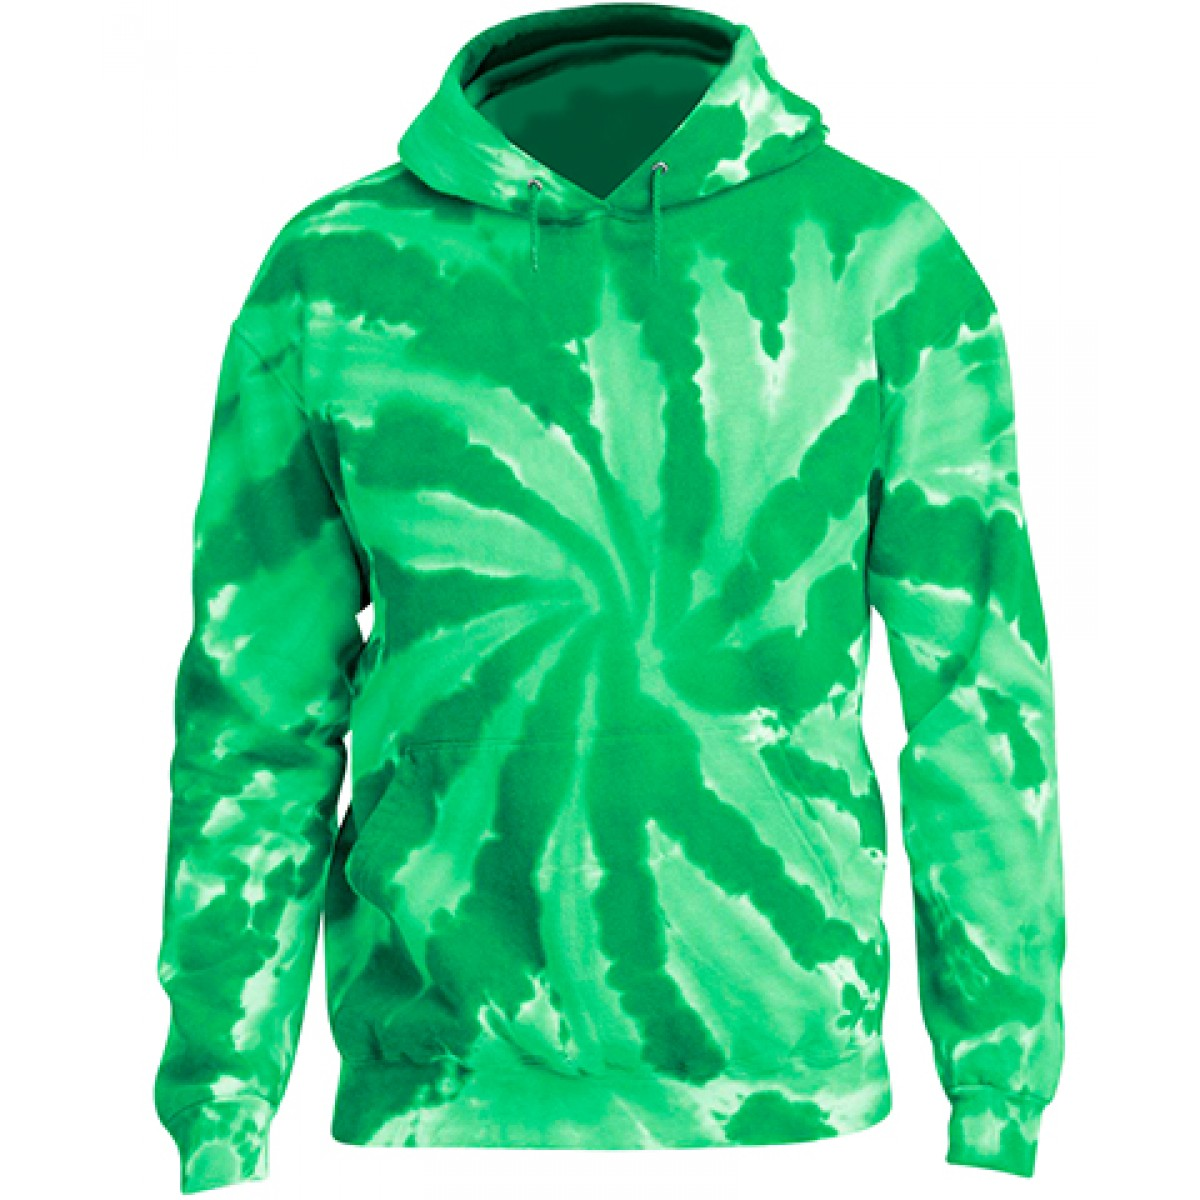 Tie-Dye Pullover Hooded Sweatshirt-Green-3XL